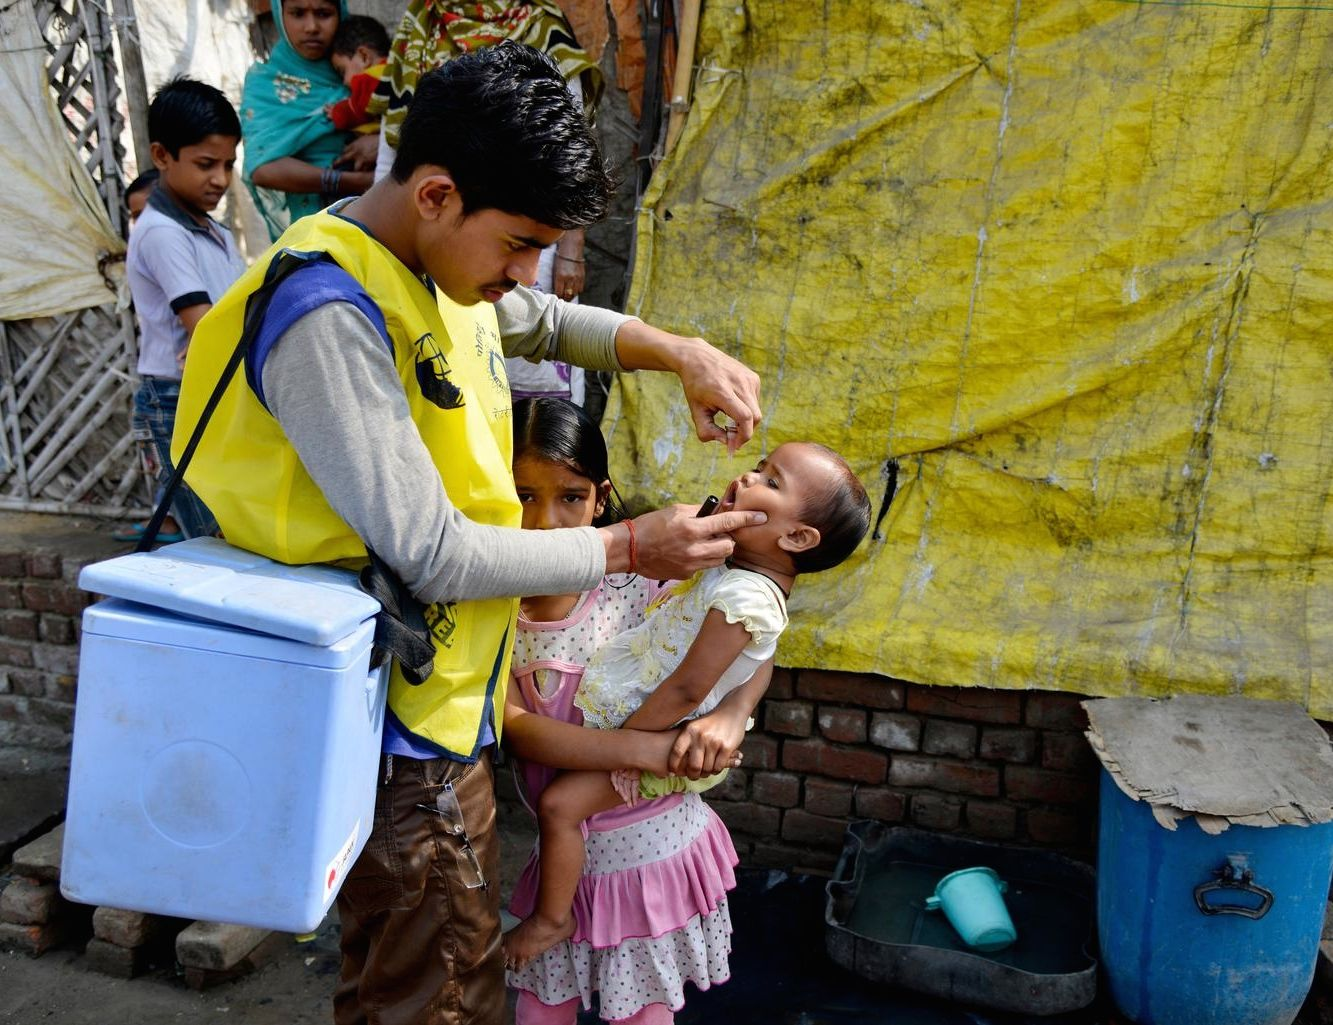 A vaccinator in India, where poor sanitation heightens the risk of childhood diseases, immunizes a child